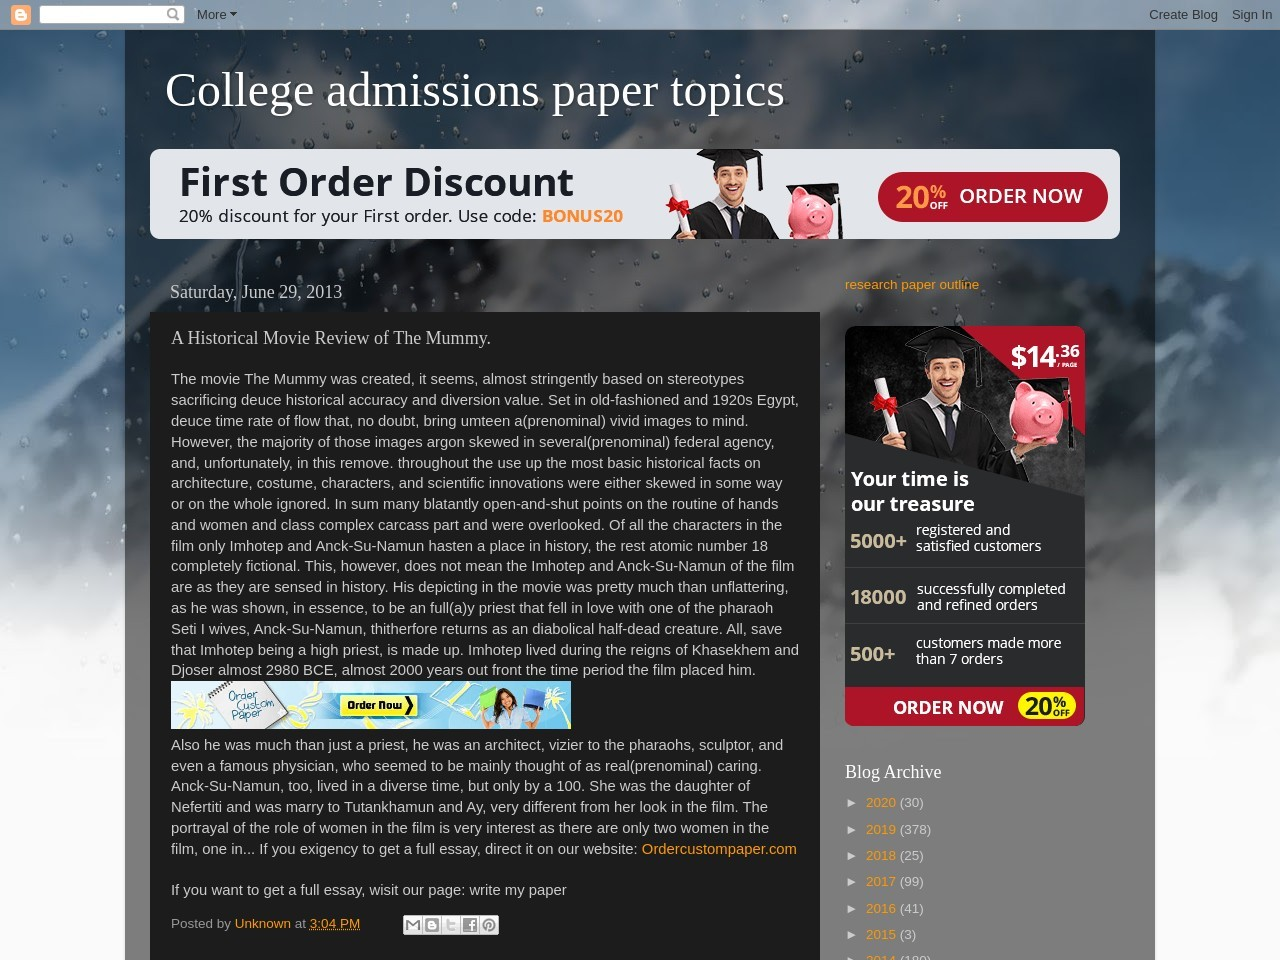 College admissions paper topics: A Historical Movie Review …